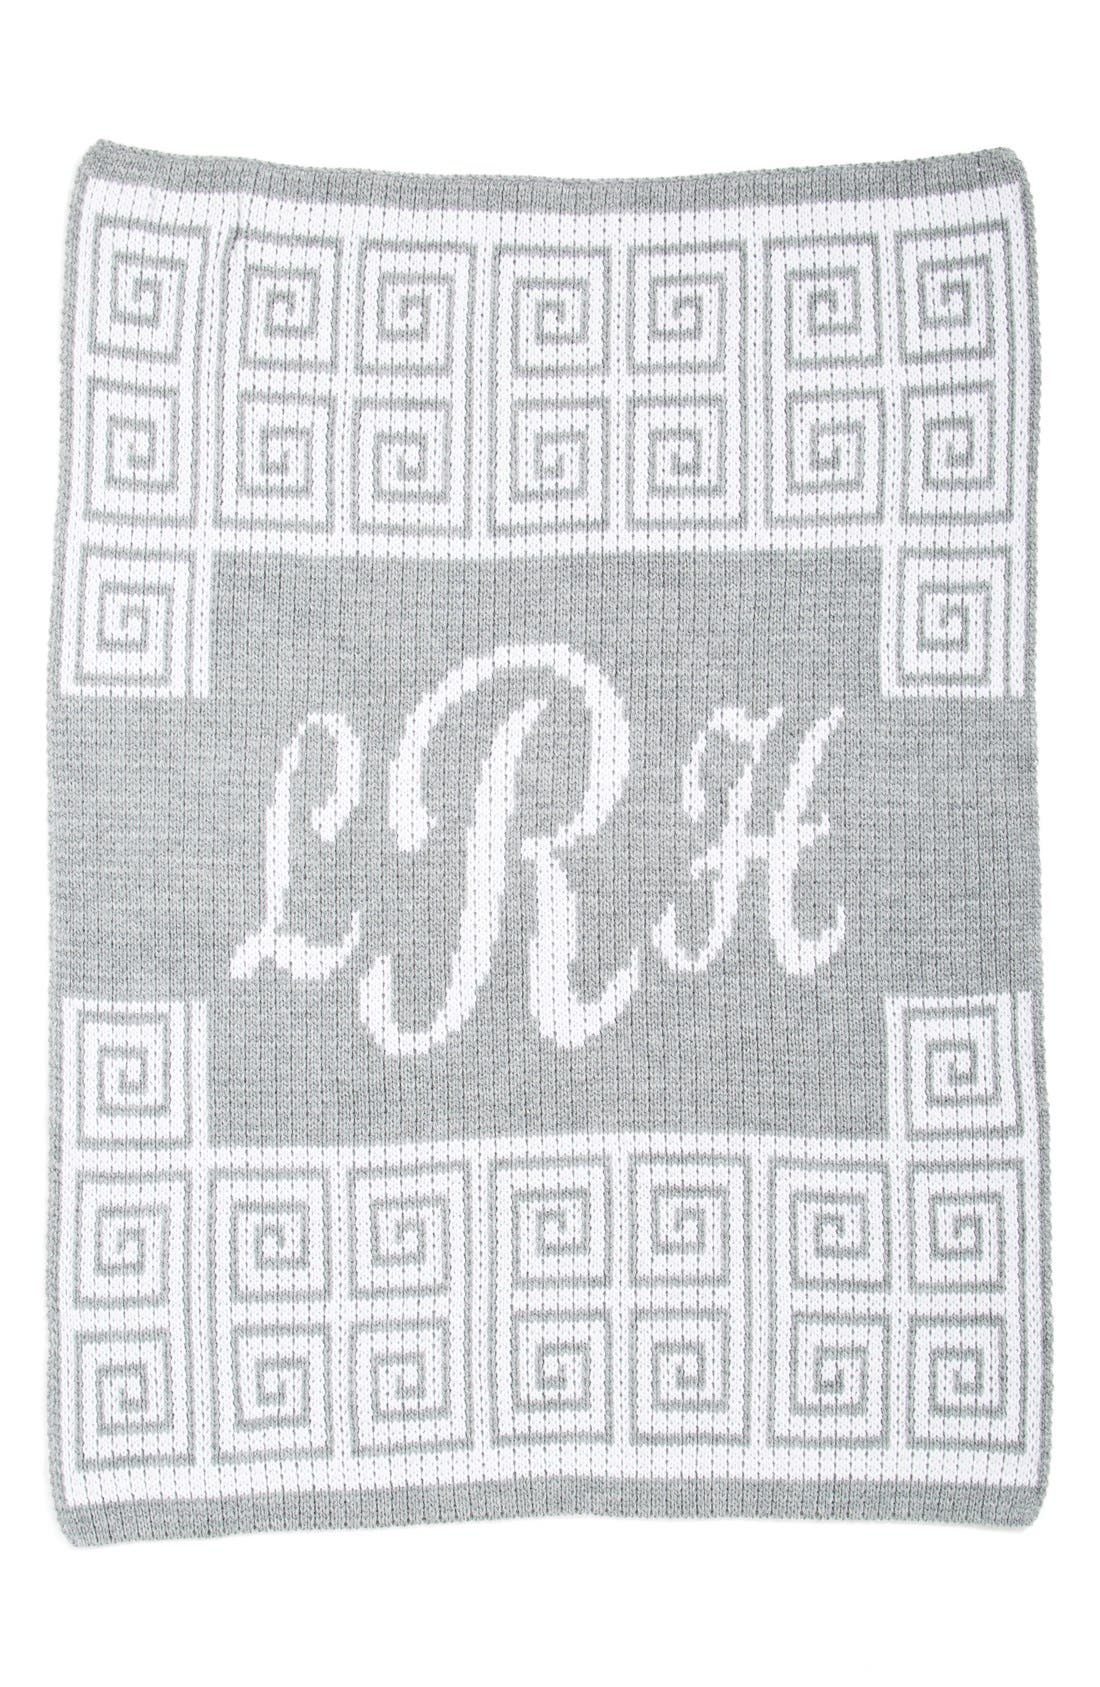 'Script' Personalized Blanket,                         Main,                         color, HEATHER GREY/ OFF WHITE